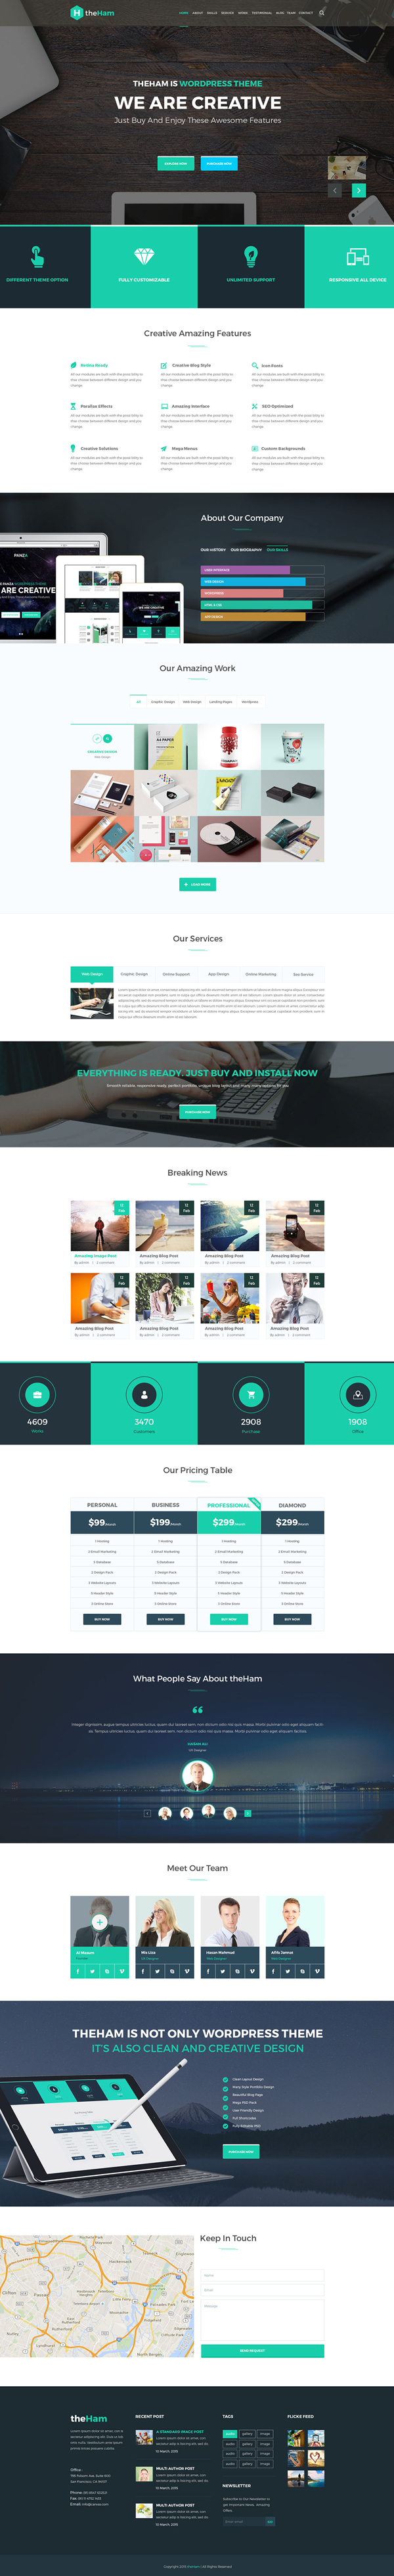 Free Creative Landing Page PSD Template